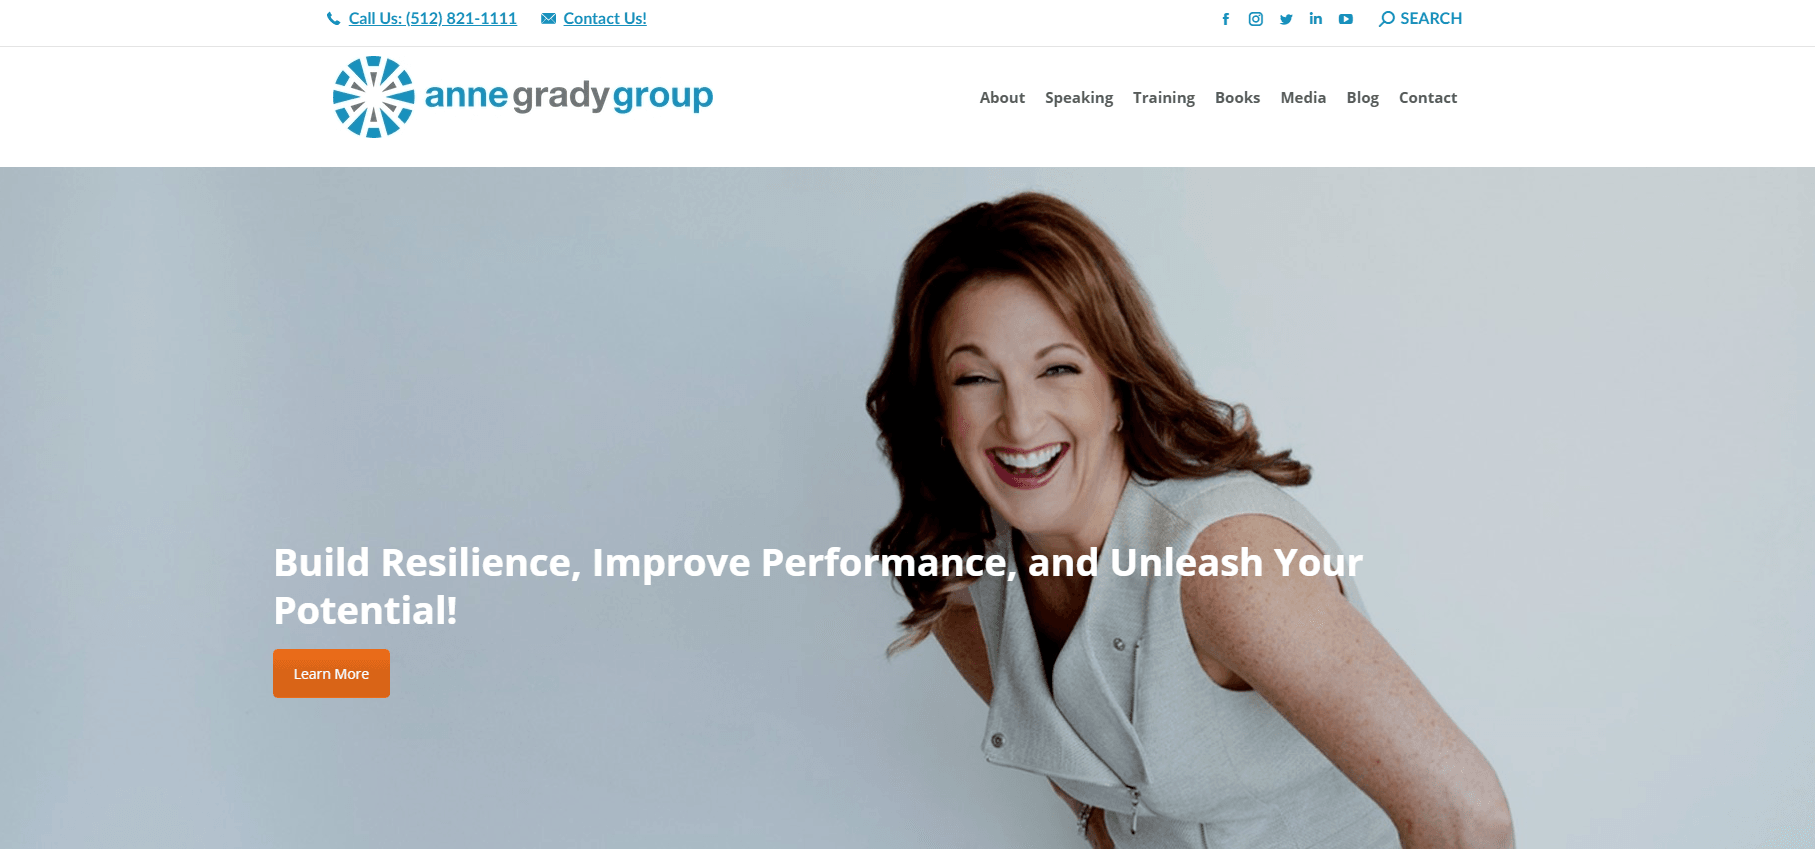 anne grady group - best website contest nominee